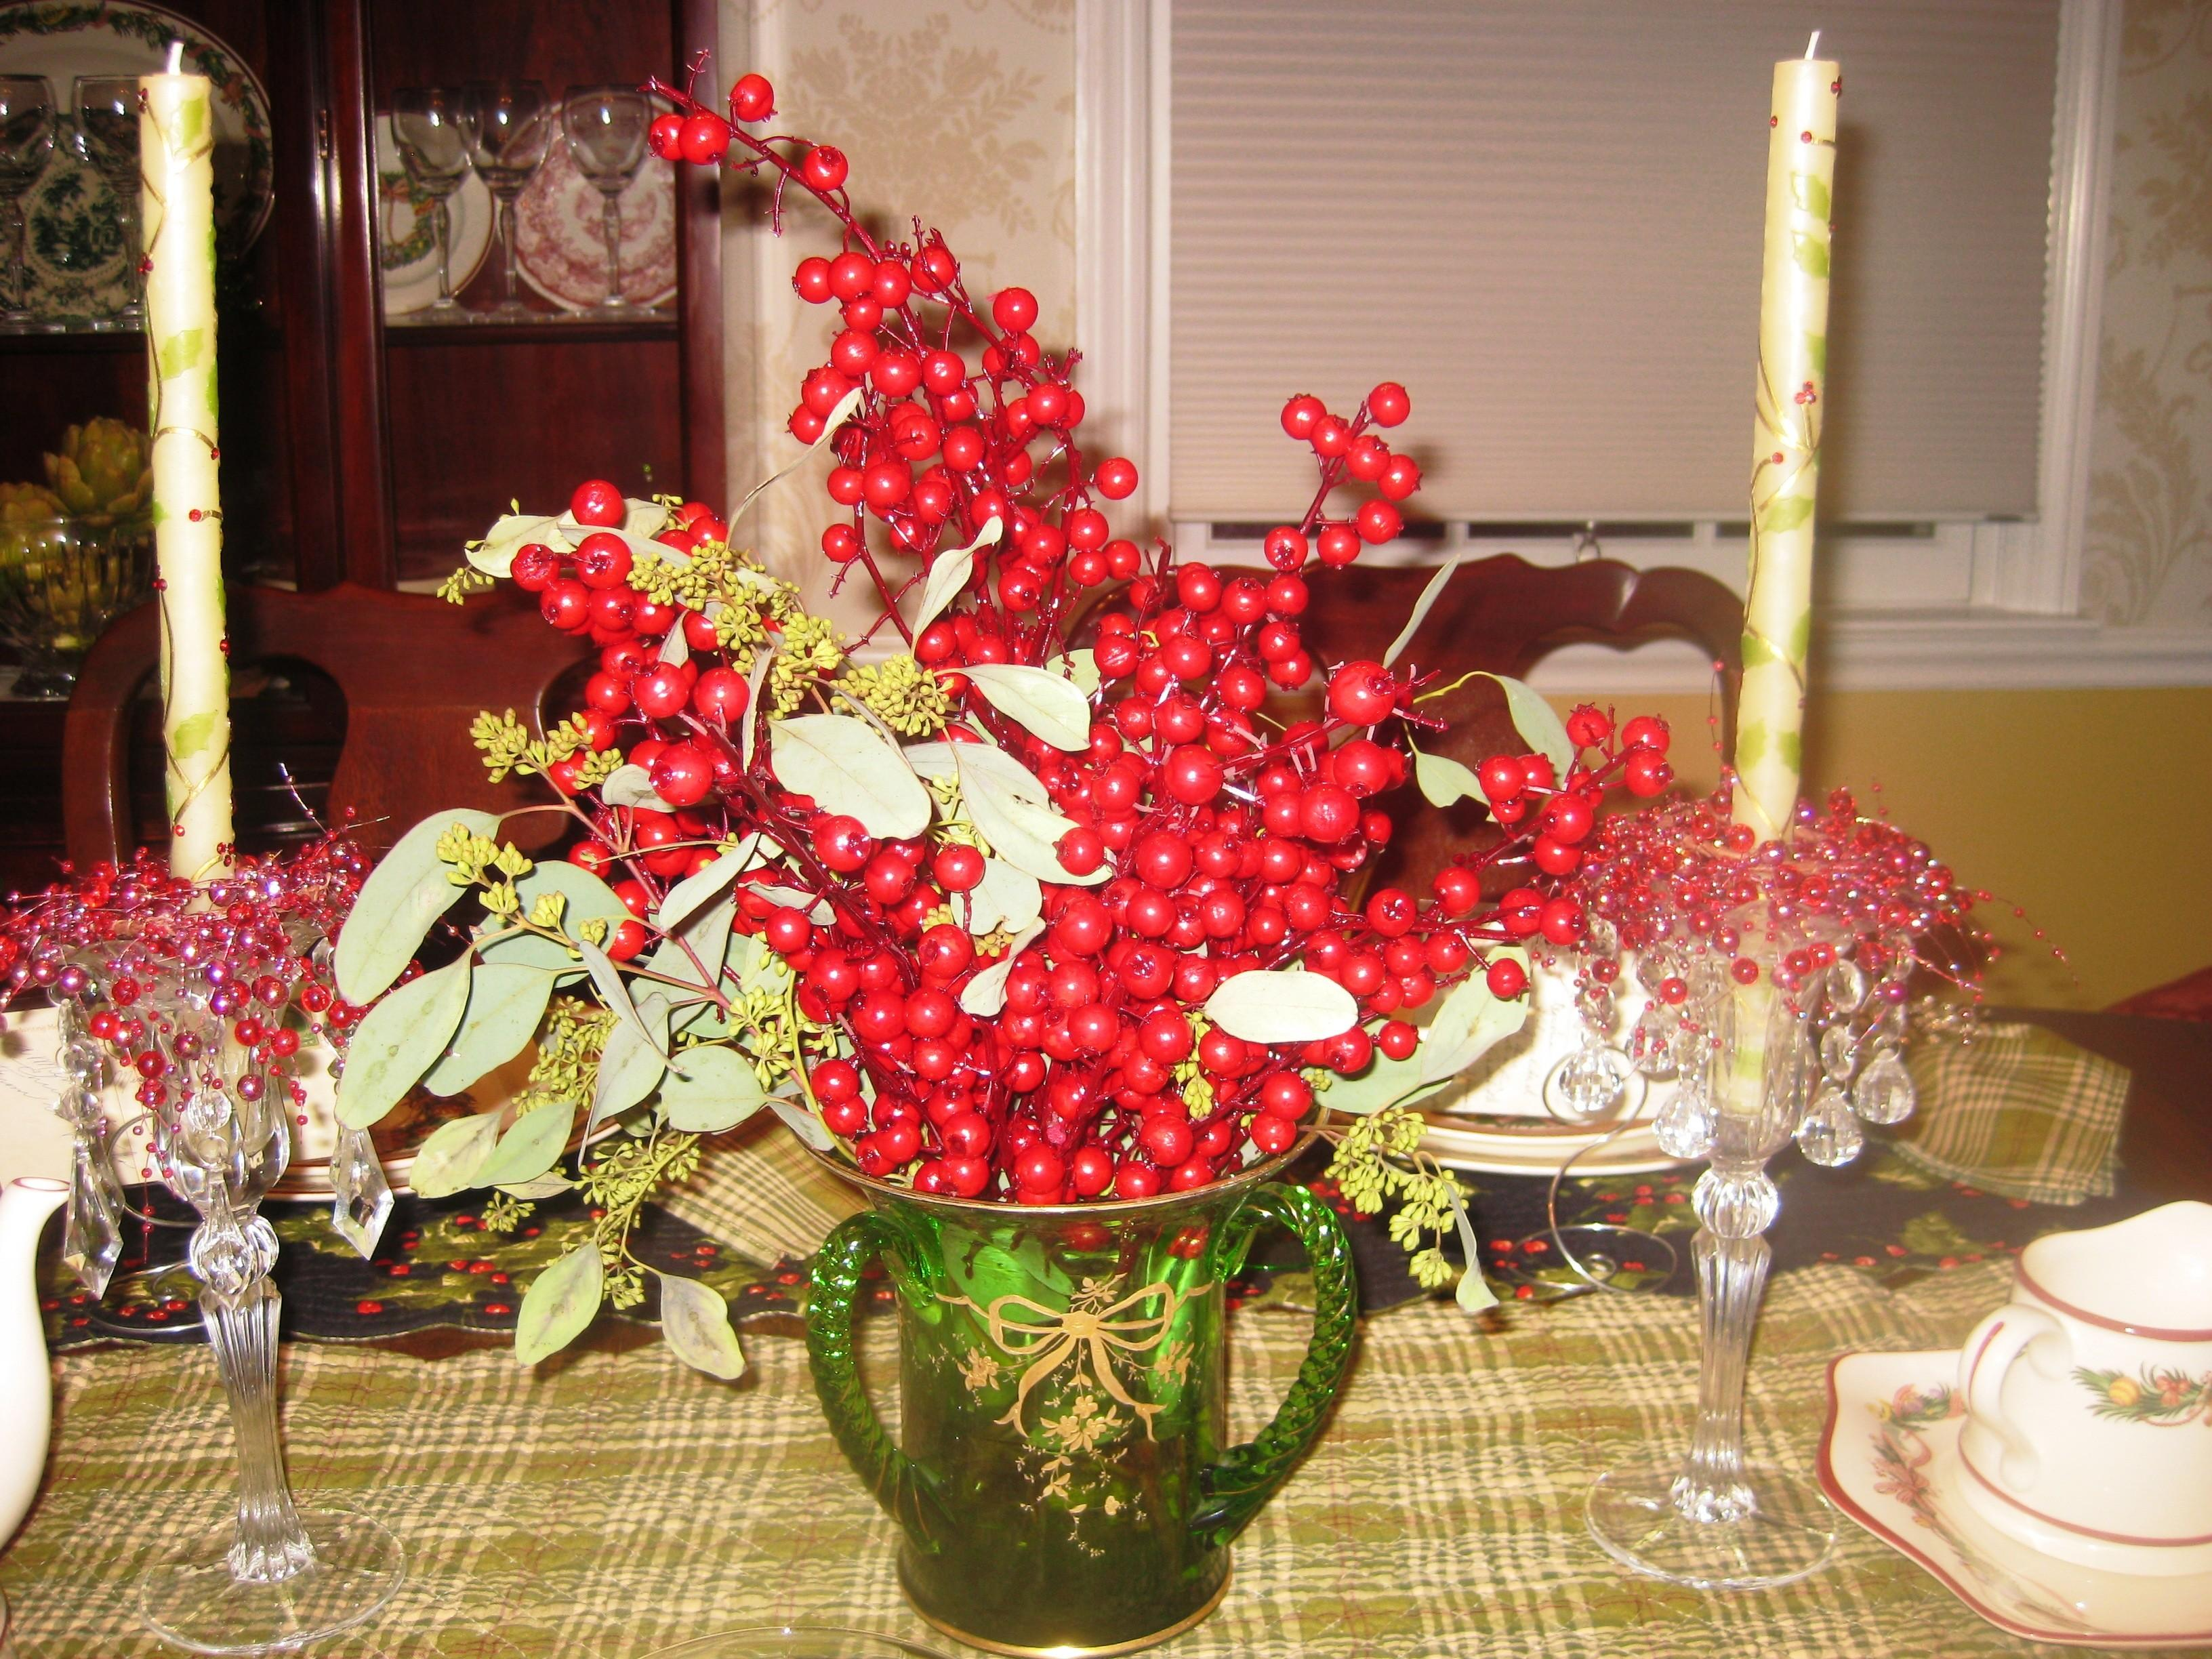 Apres Christmas Dinner Holly Berry Themed Tablescape